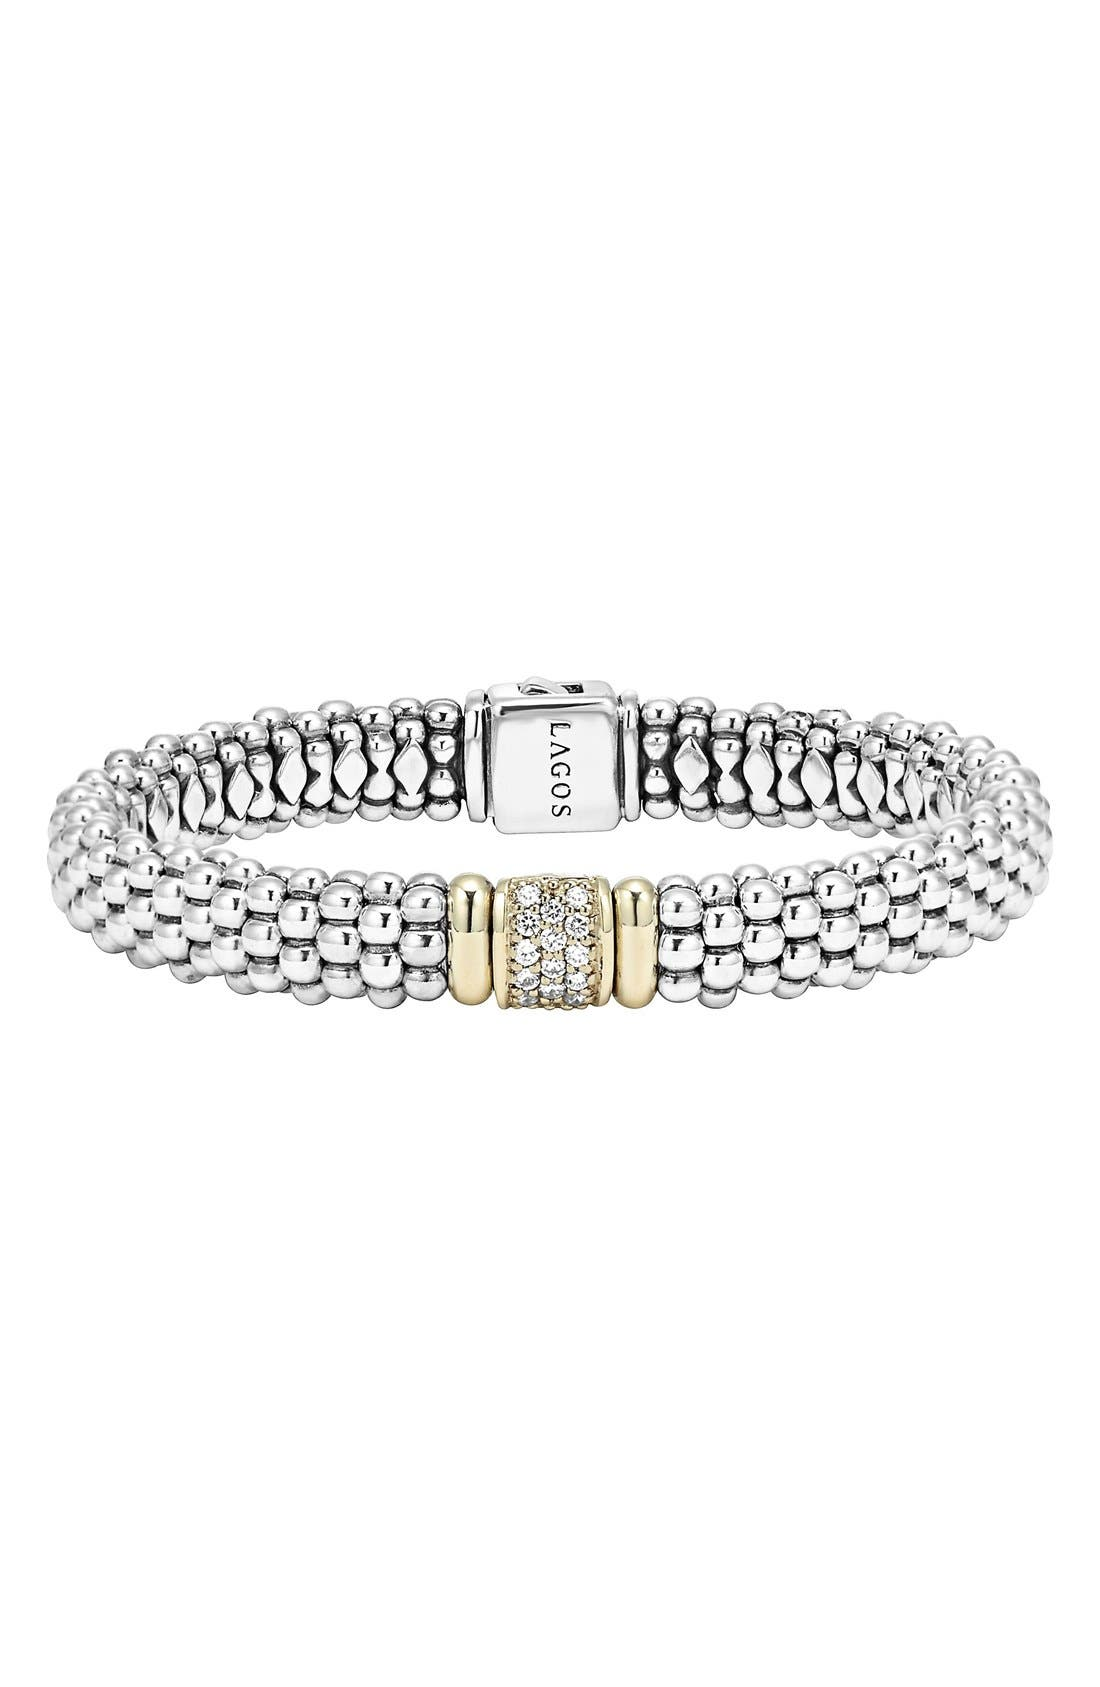 Diamond & Caviar Station Bracelet,                             Main thumbnail 1, color,                             040